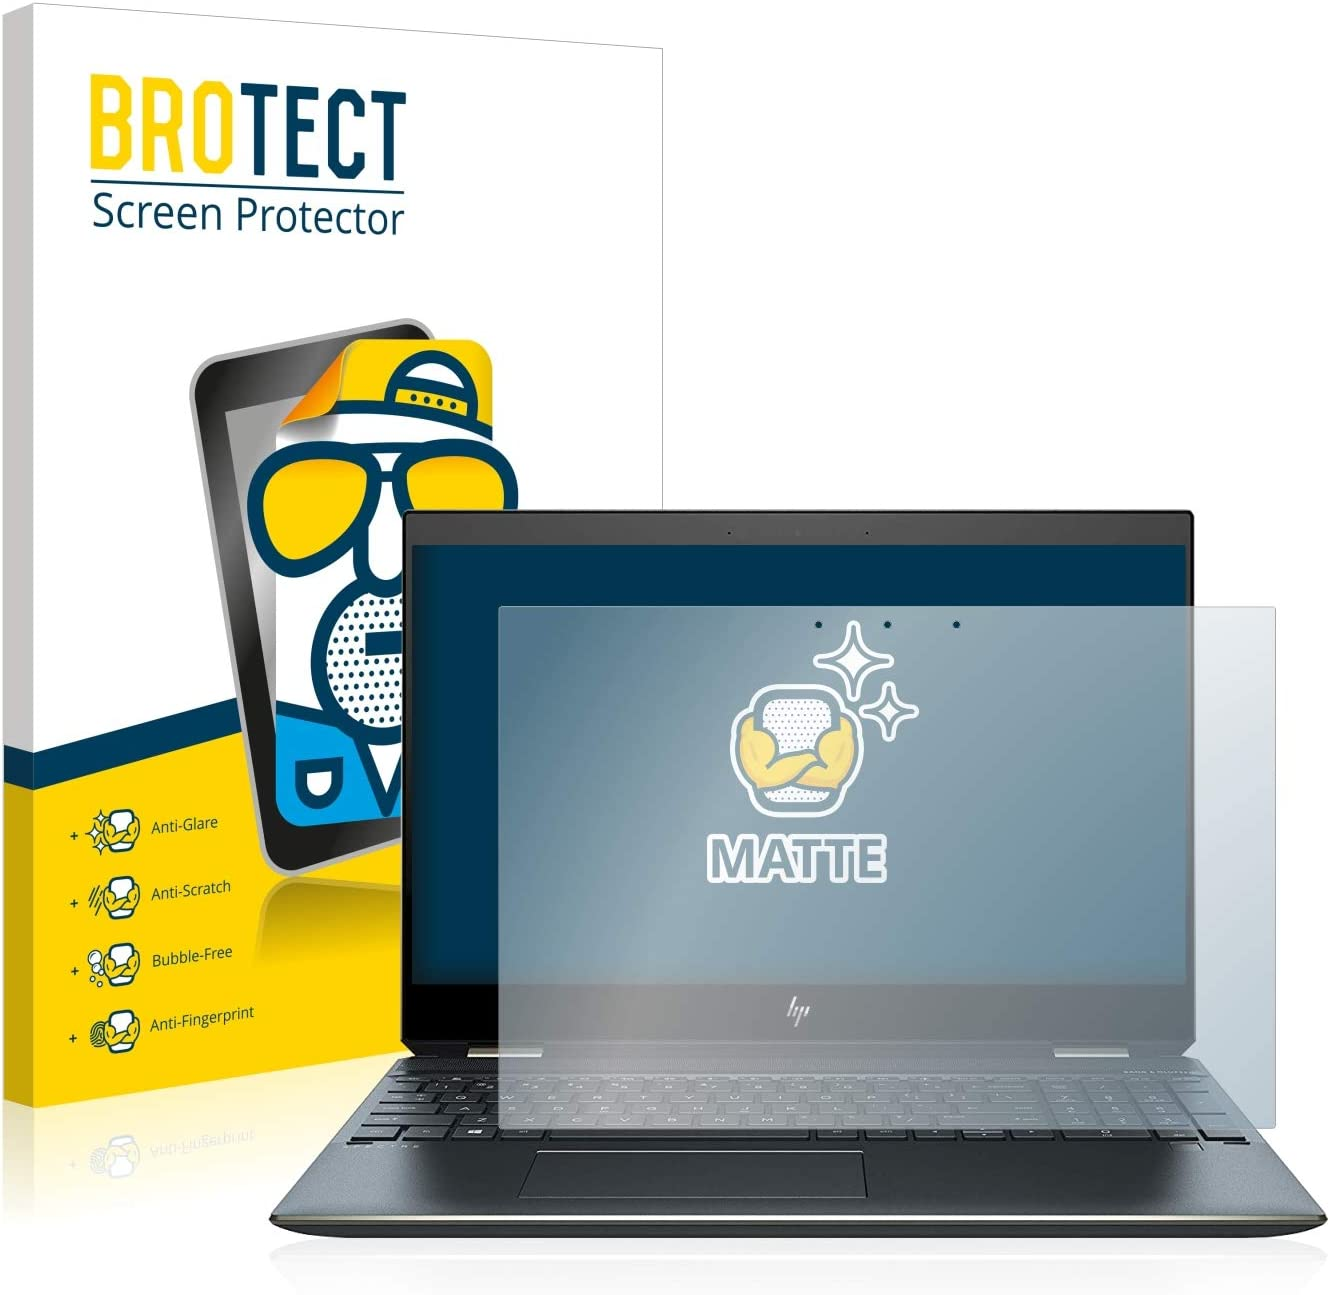 Anti-Fingerprint Protection Film brotect 1-Pack Screen Protector Anti-Glare compatible with HP Spectre x360 15-df0304ng Screen Protector Matte